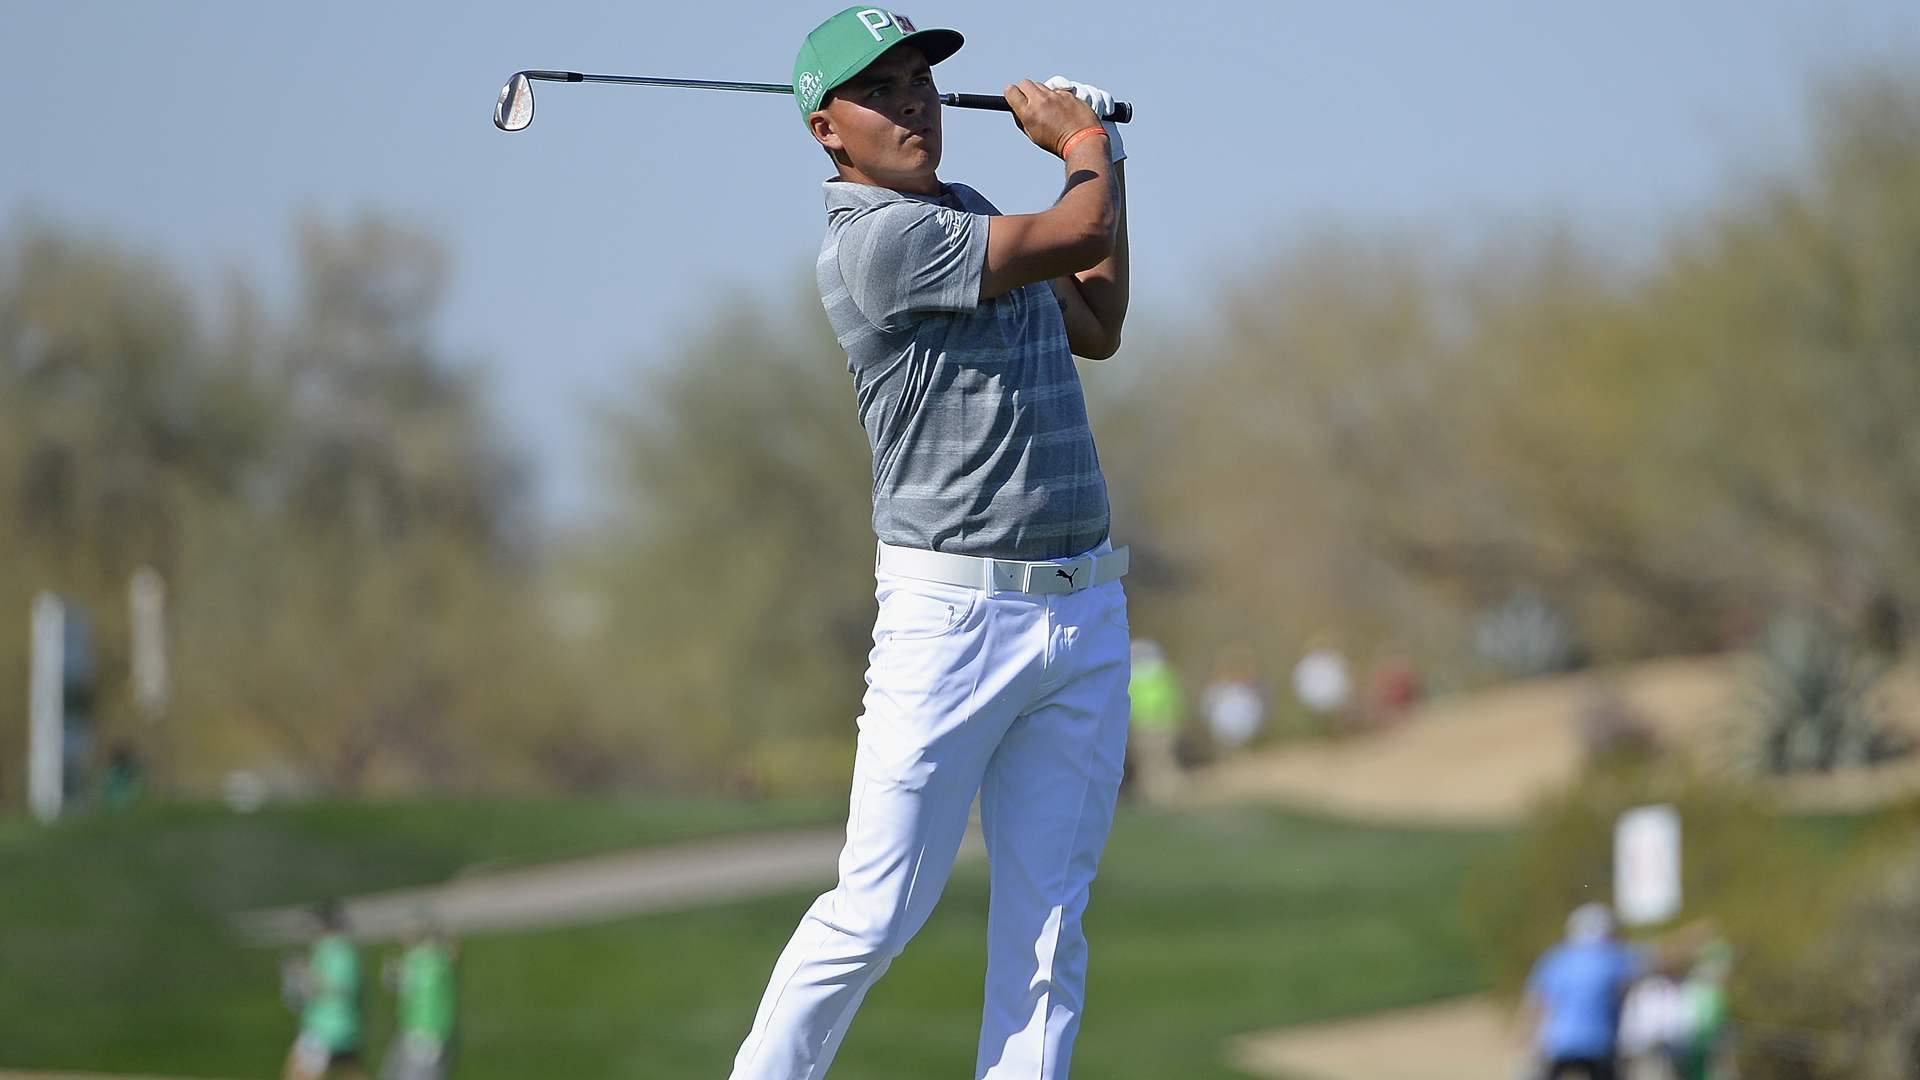 Two-time champ Matsuyama withdraws from Phoenix Open